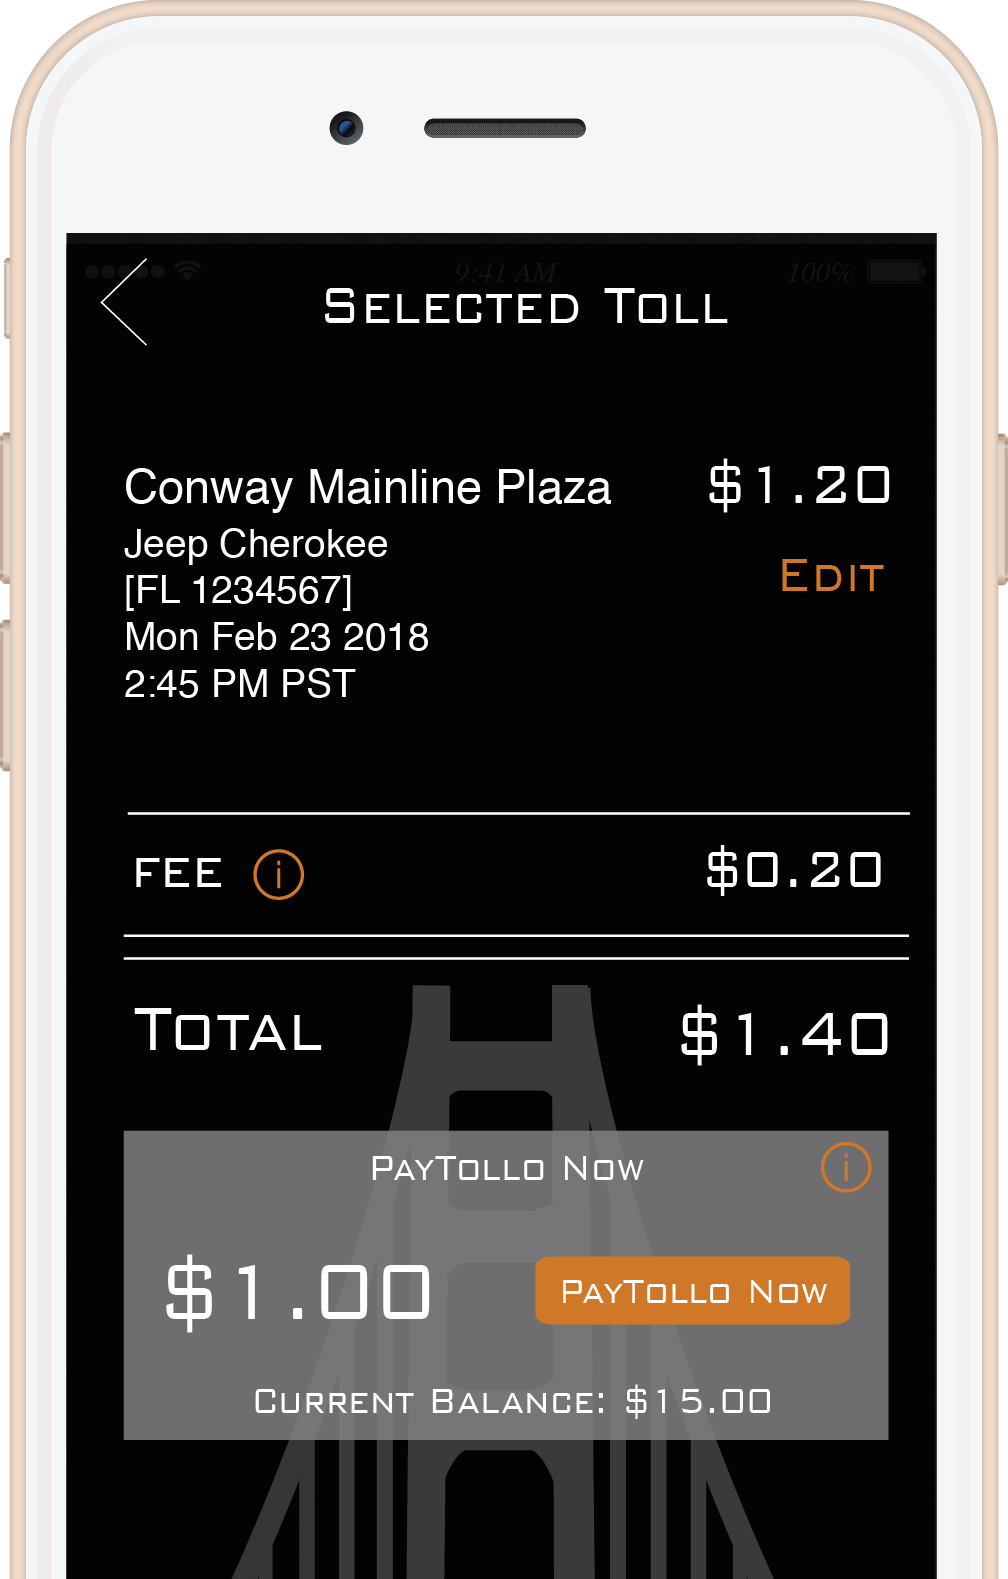 Pay Tolls Online Nyc >> Paytollo The Mobile App To Pay For Toll Roads